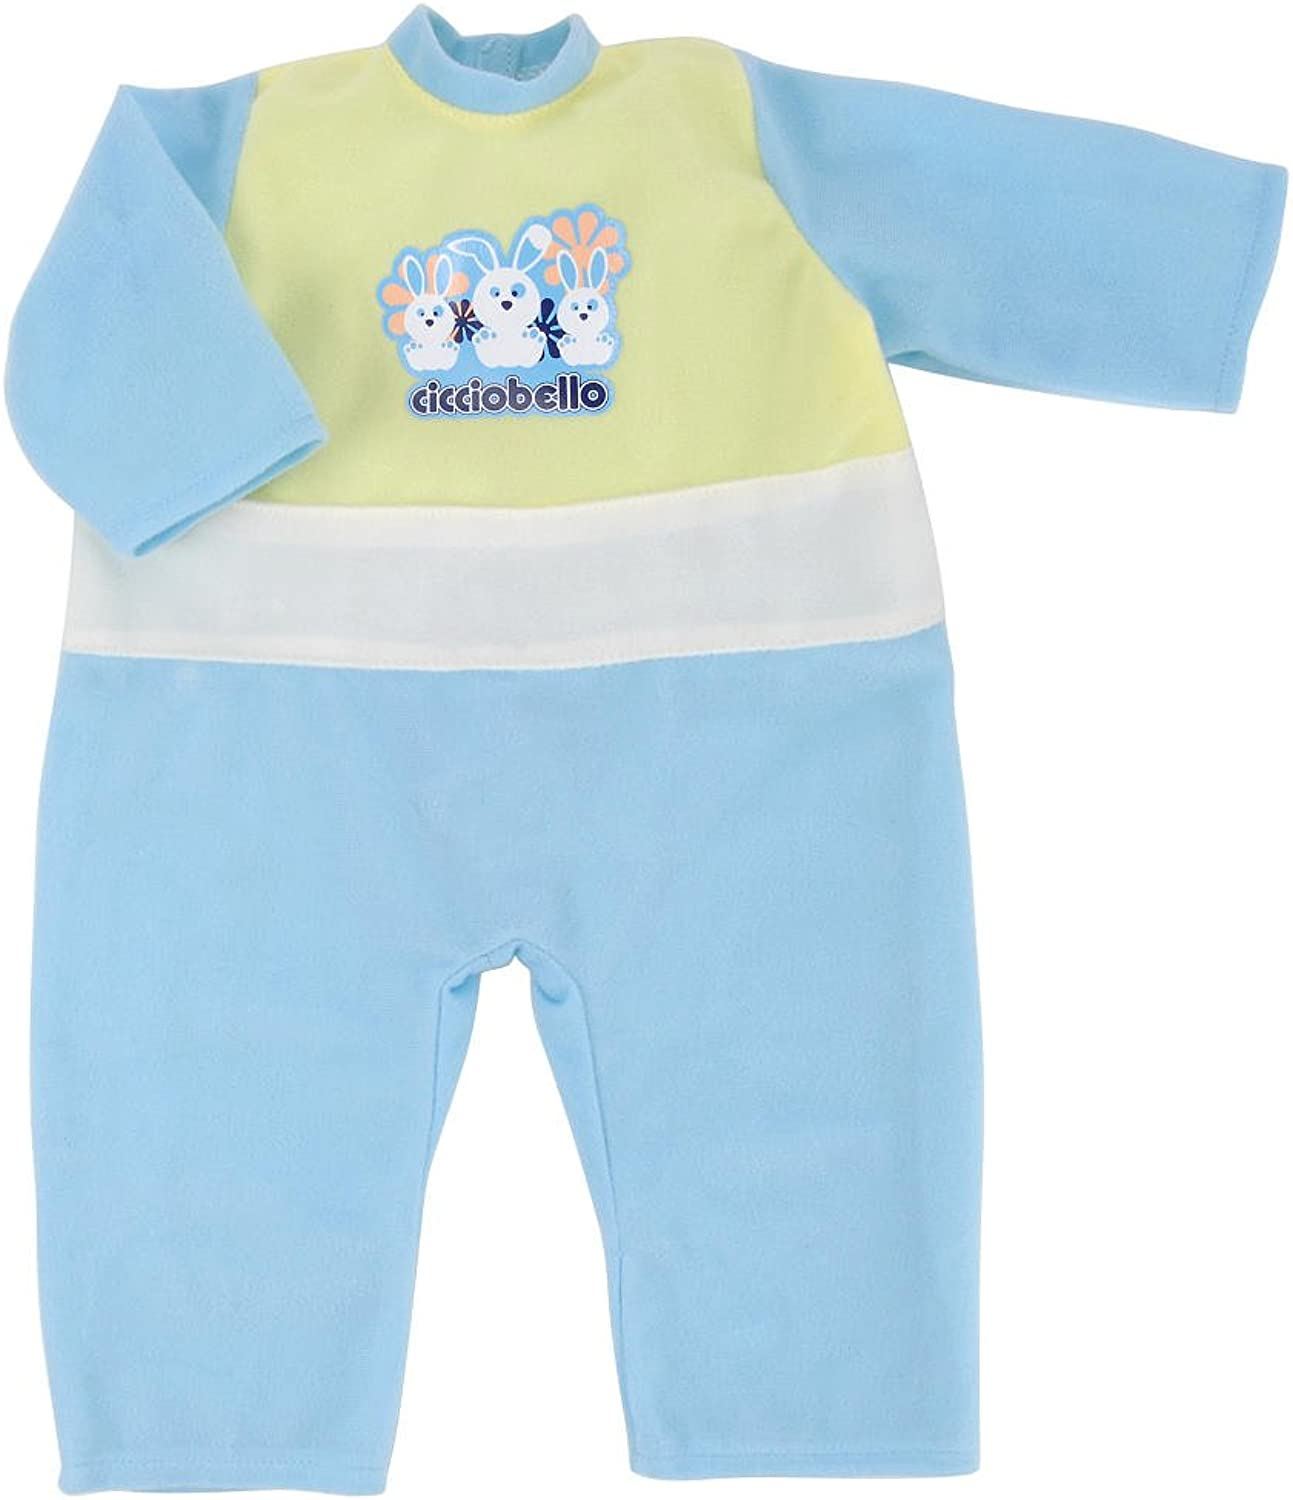 Cicciobello Doll Outfit  bluee and Green Romper